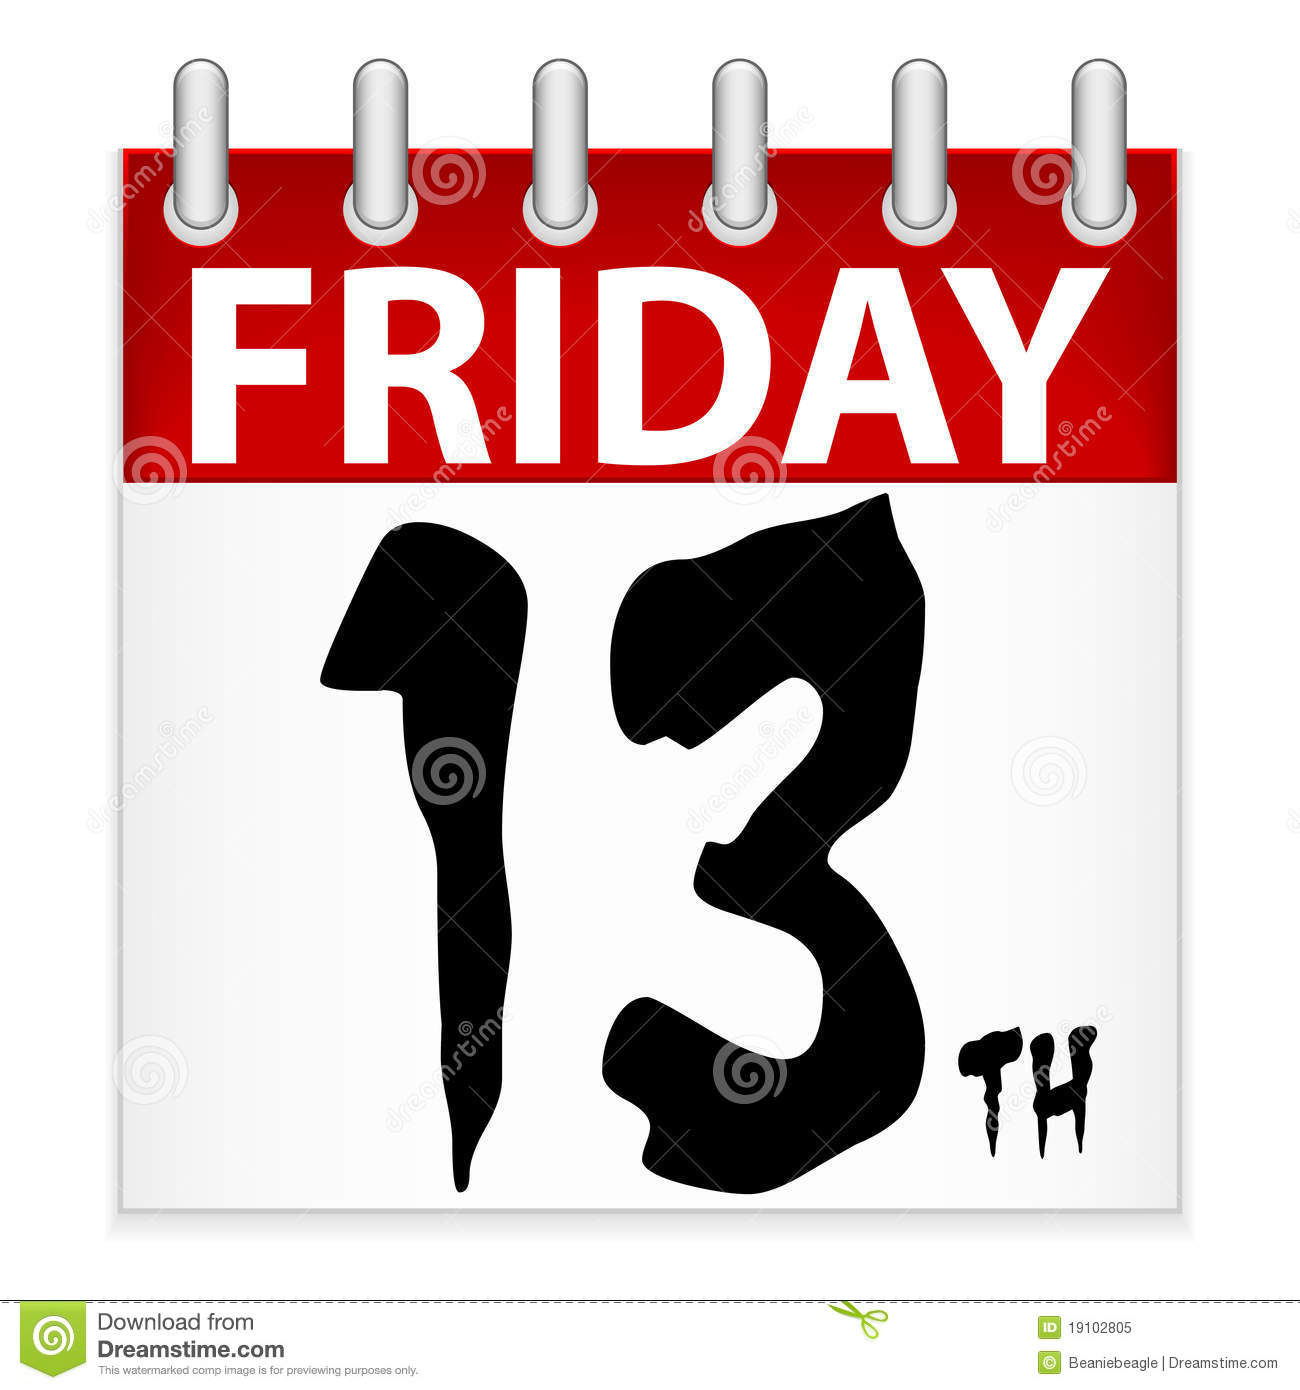 Stay Sane Friday 13th Is Upon Us Prima N-Stay Sane Friday 13th Is Upon Us Prima News-6